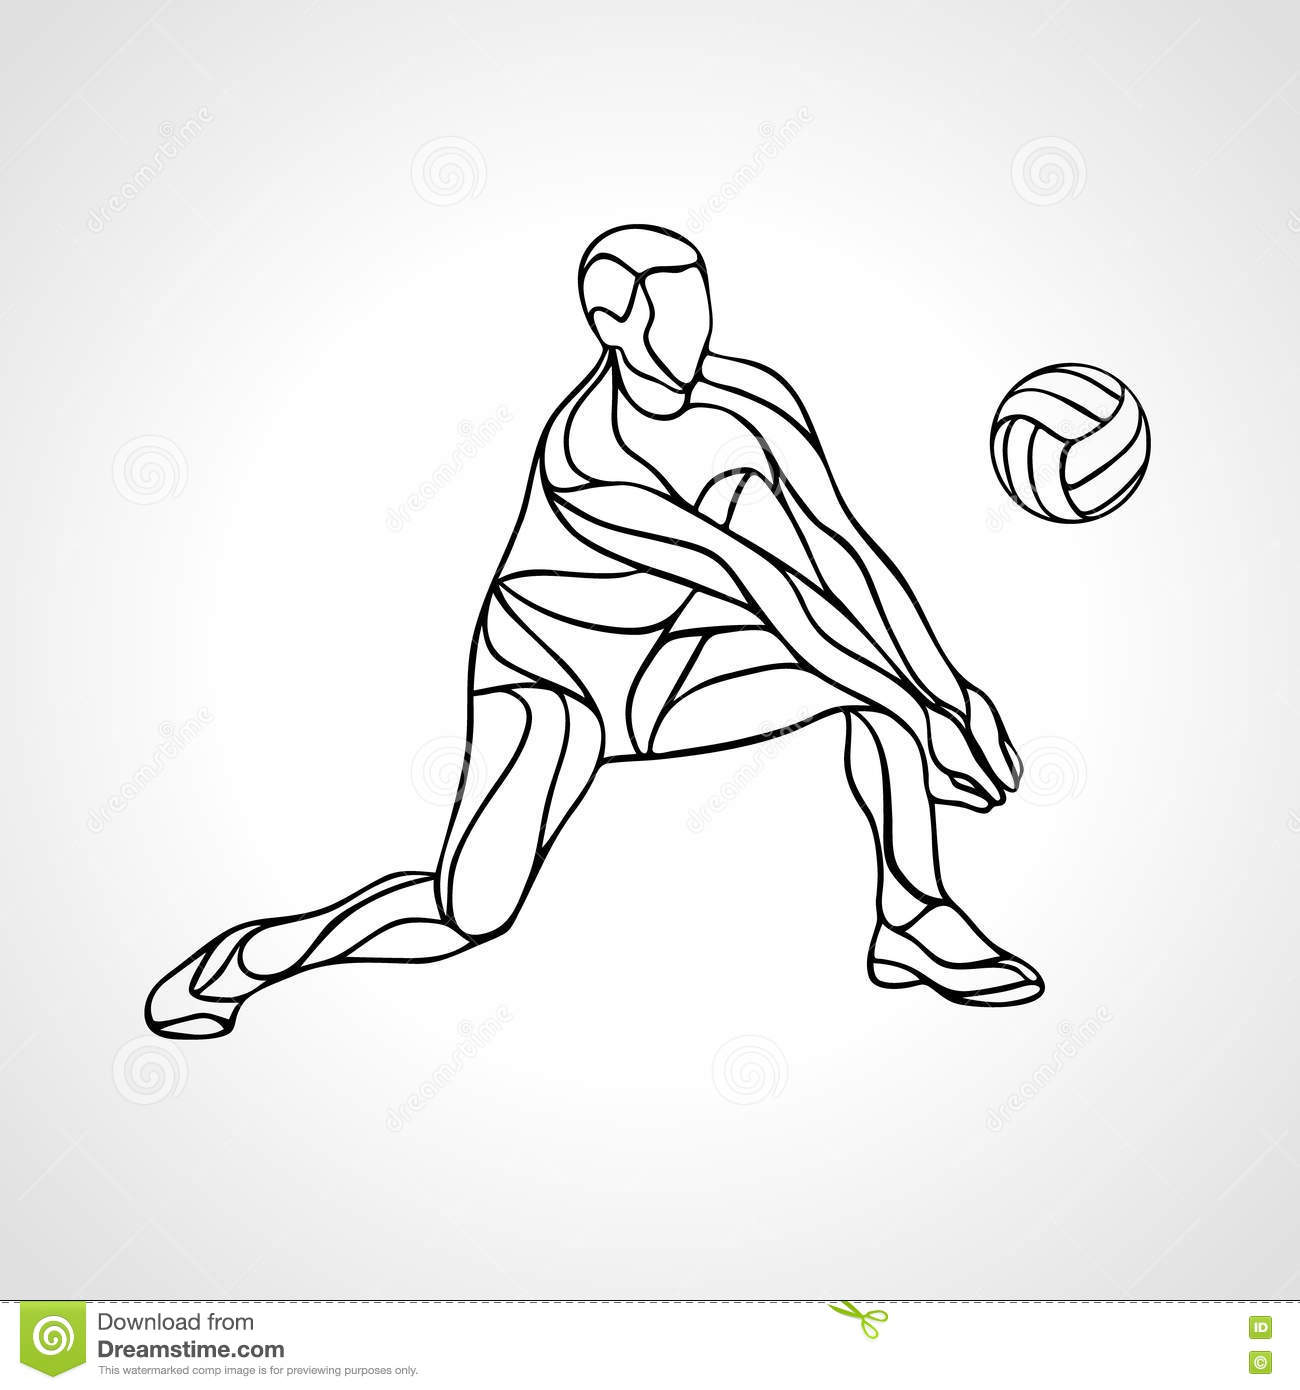 Volleyball Player Outline Silhouette Stock Vector